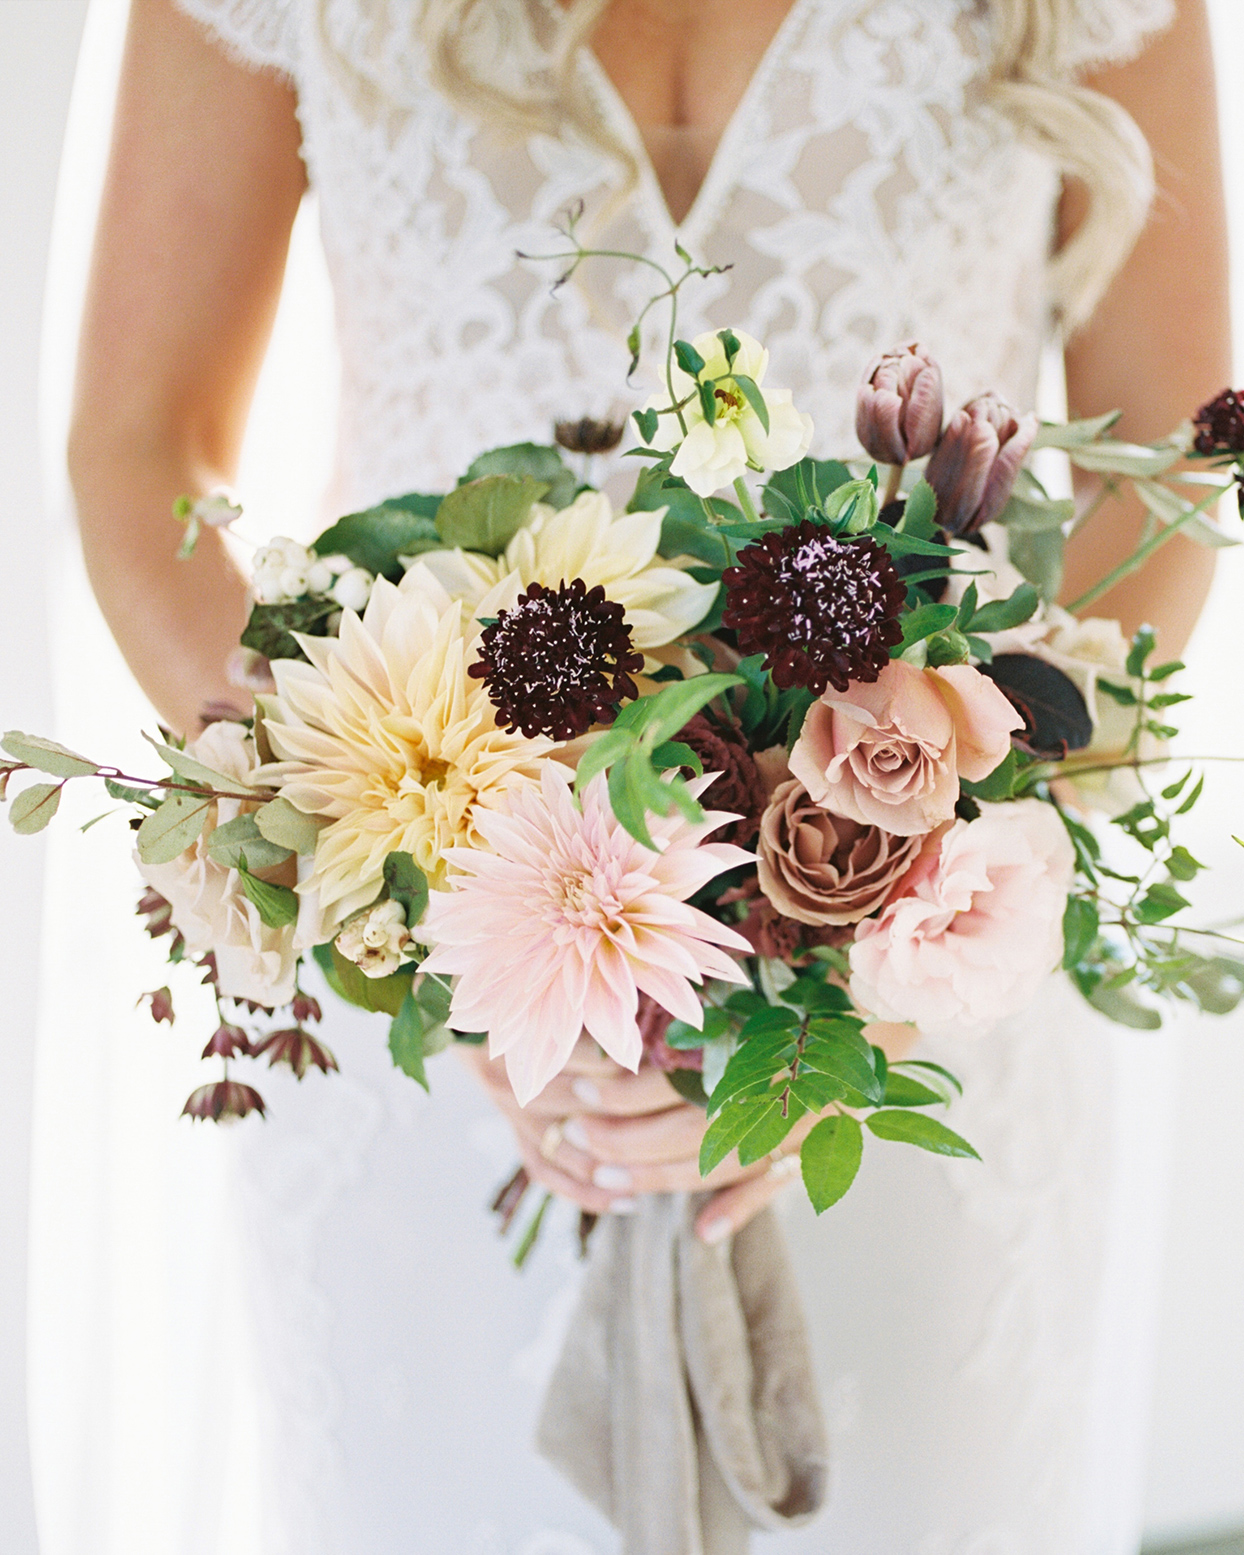 bouquet with cafe au lait dahlias, garden roses, blush lisianthus, butterfly ranunculus, and black scabiosa in neutrals and pale pinks